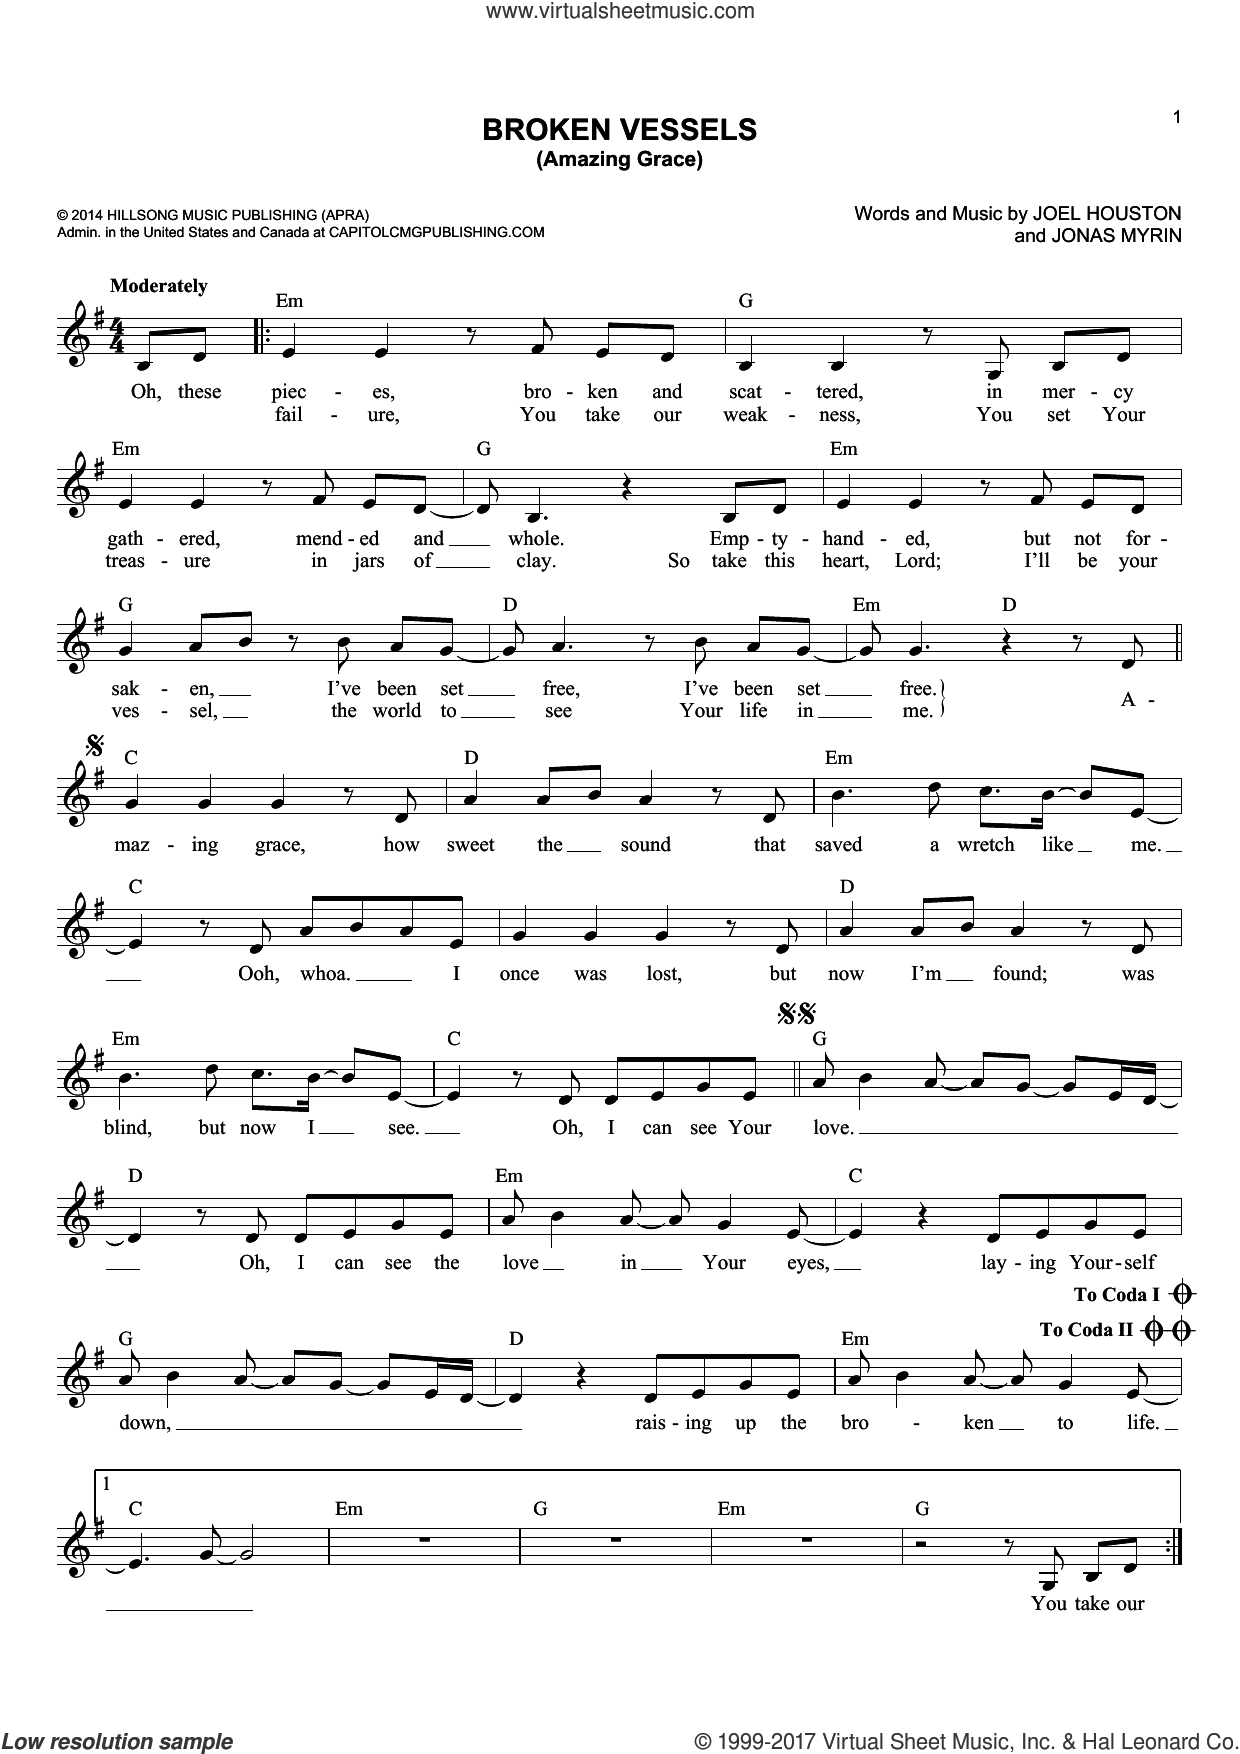 Broken Vessels (Amazing Grace) sheet music for voice and other instruments (fake book) by Joel Houston and Jonas Myrin, intermediate skill level